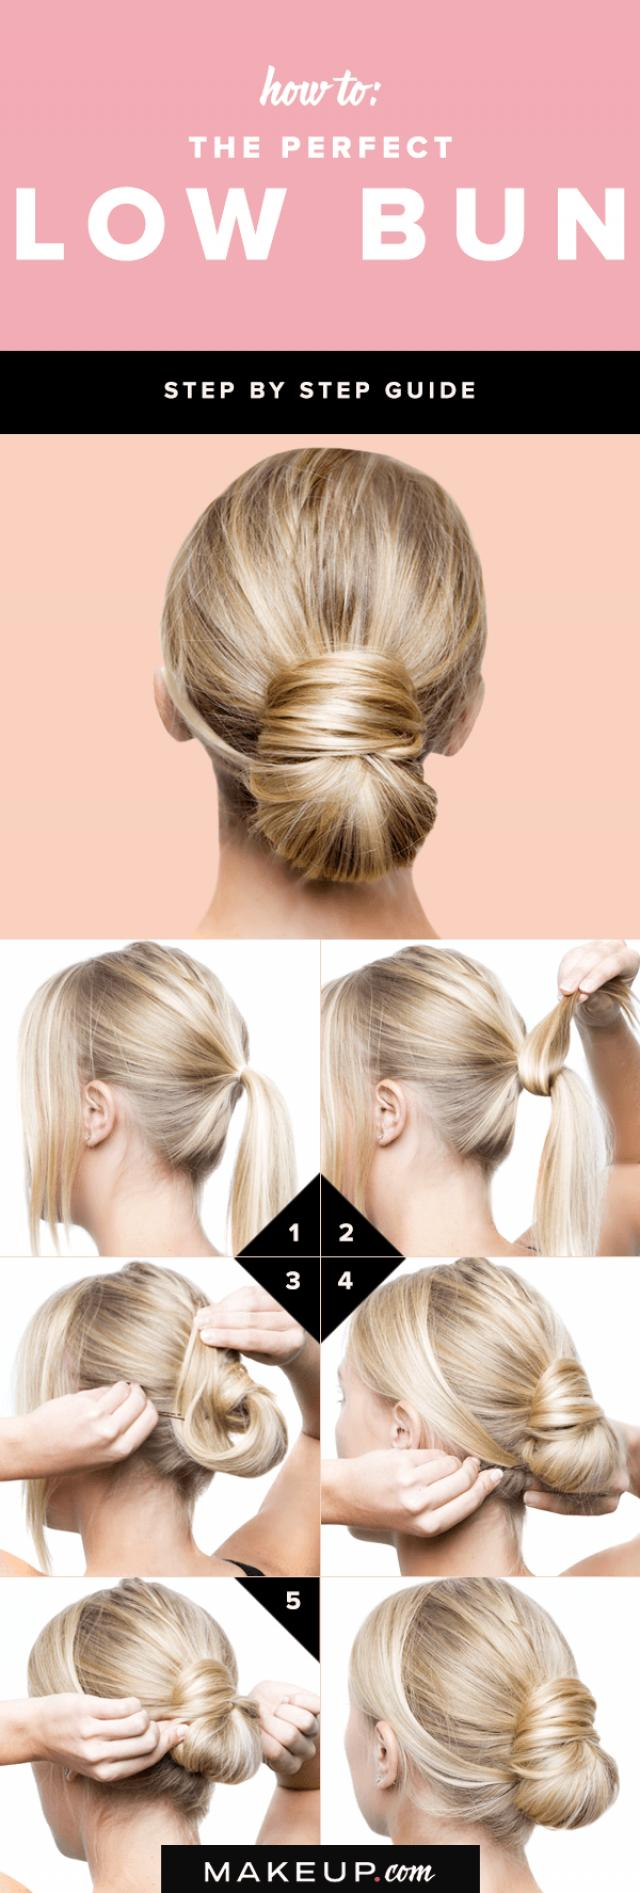 How To: The Perfect Low Bun